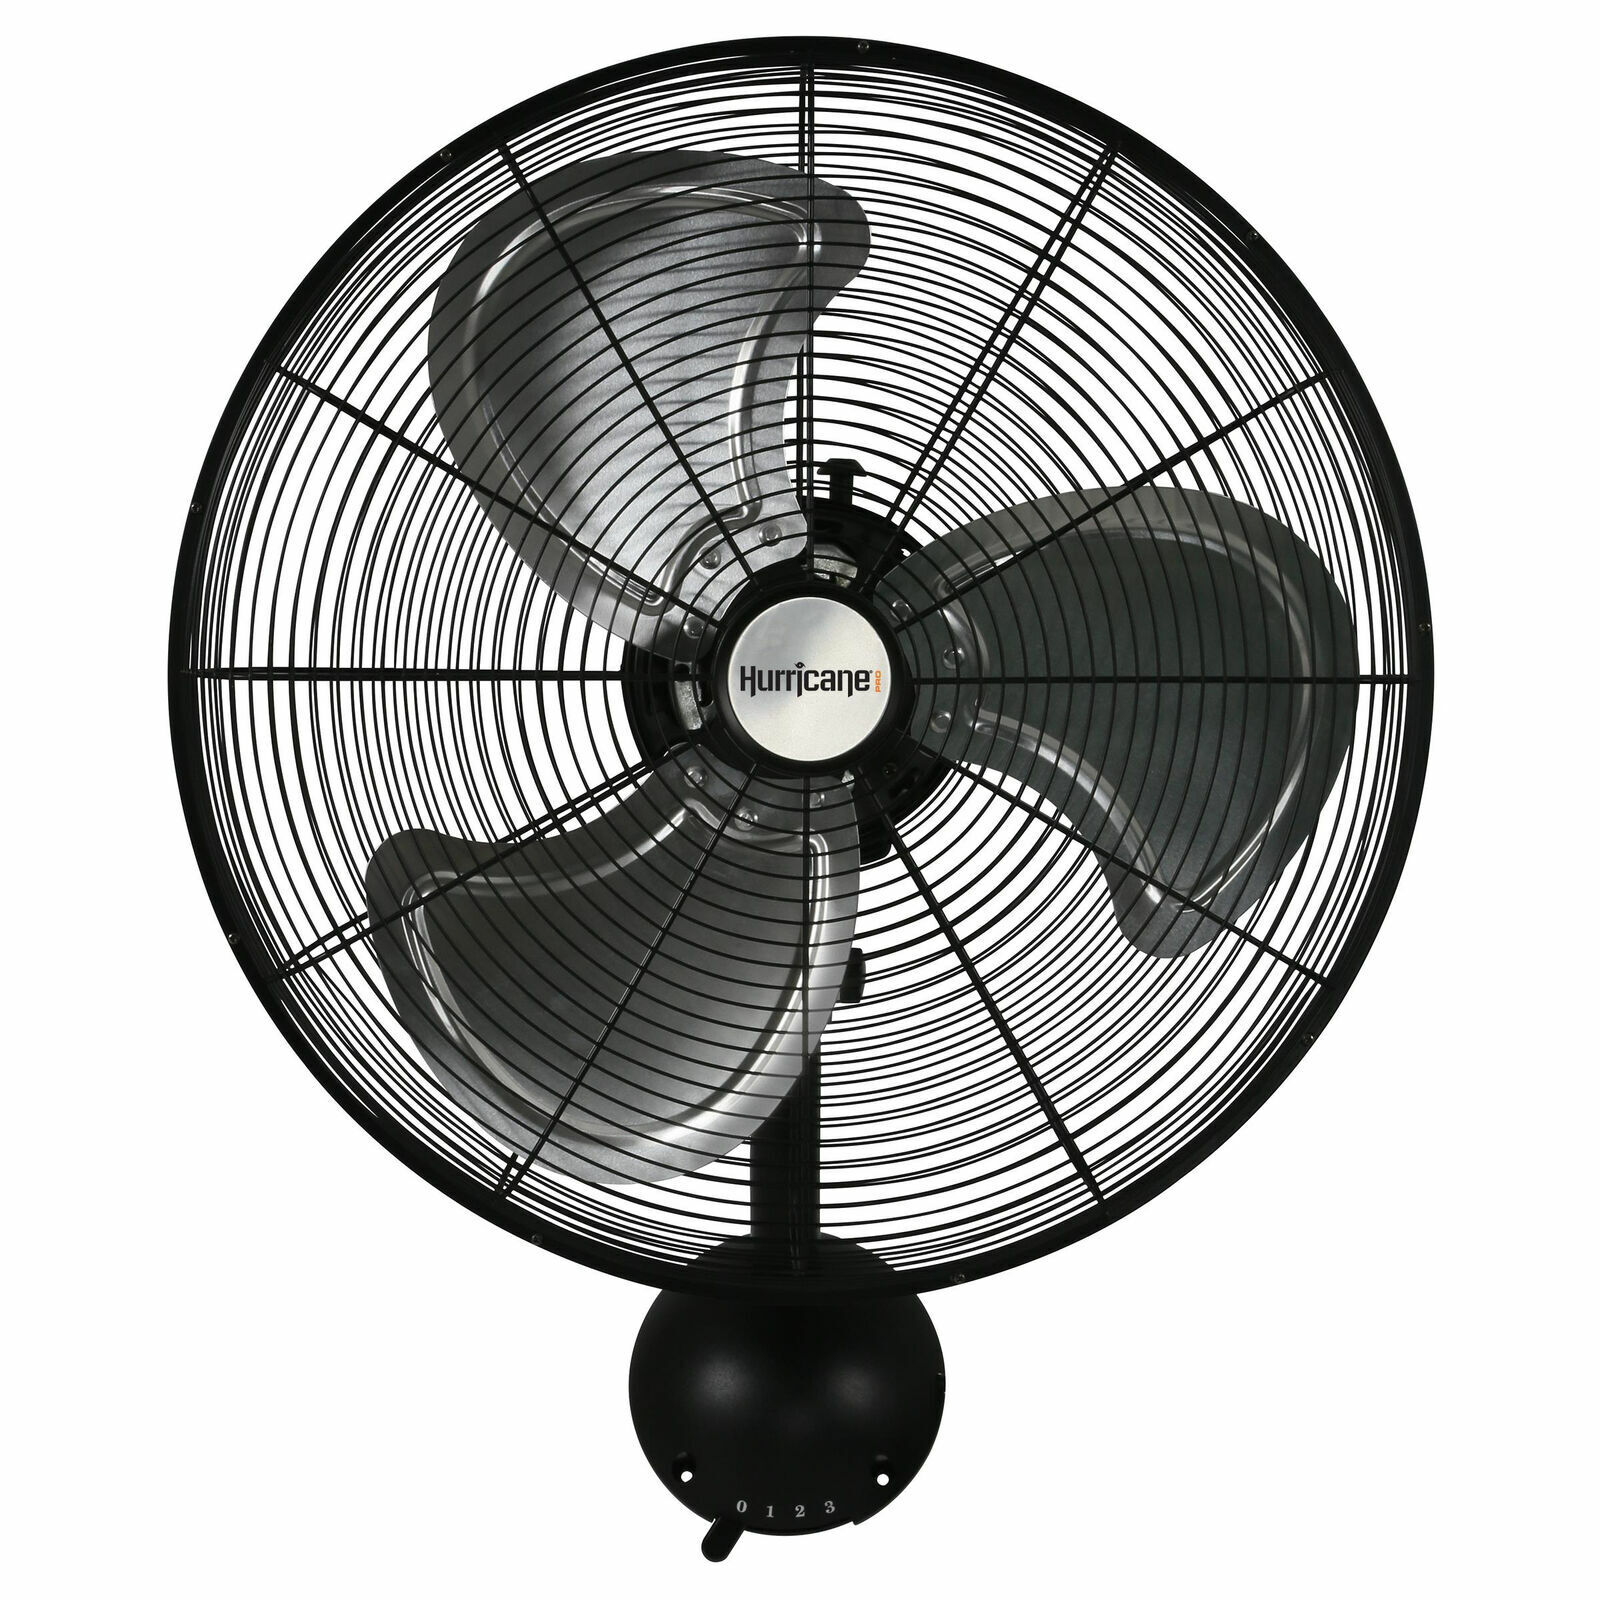 Hurricane Pro High Velocity Oscillating Metal Wall Mount Fan